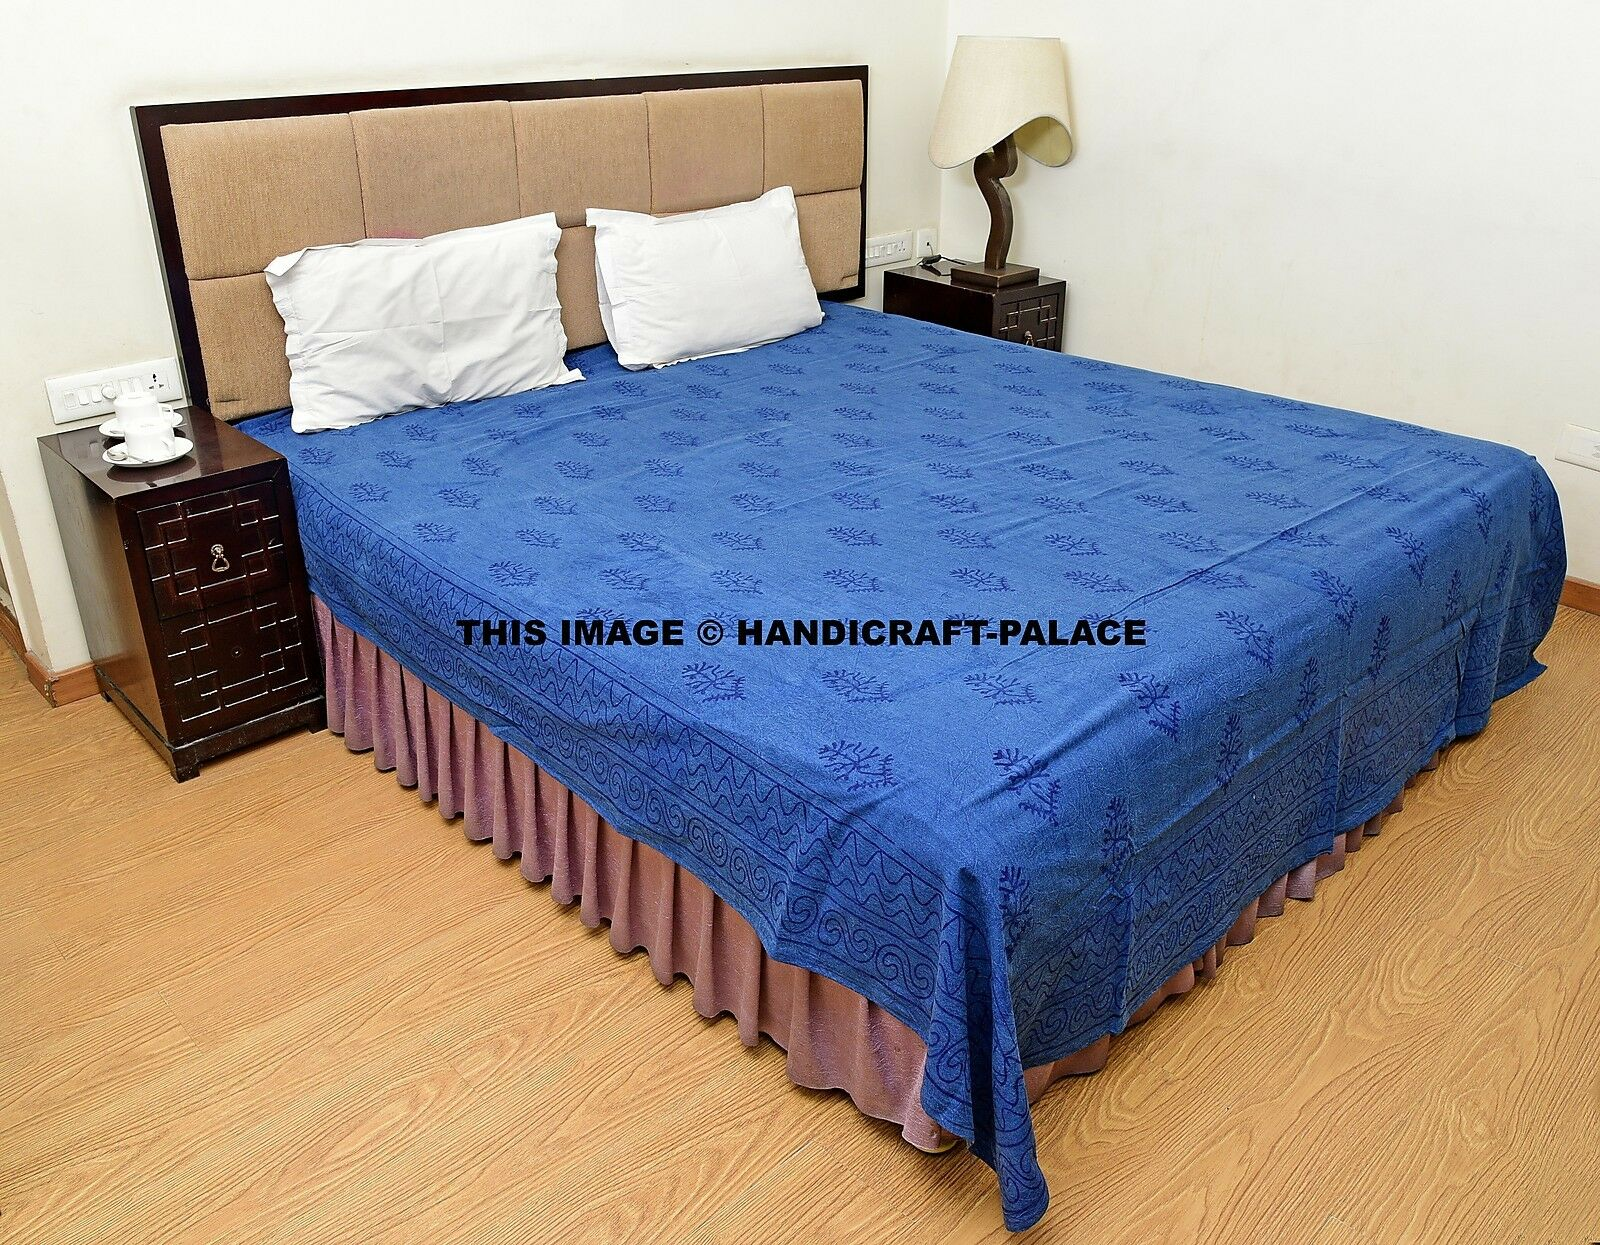 Indian Floral Printed Indigo blueeee Bed Sheet Bed Cover King Size Cotton Bedspread